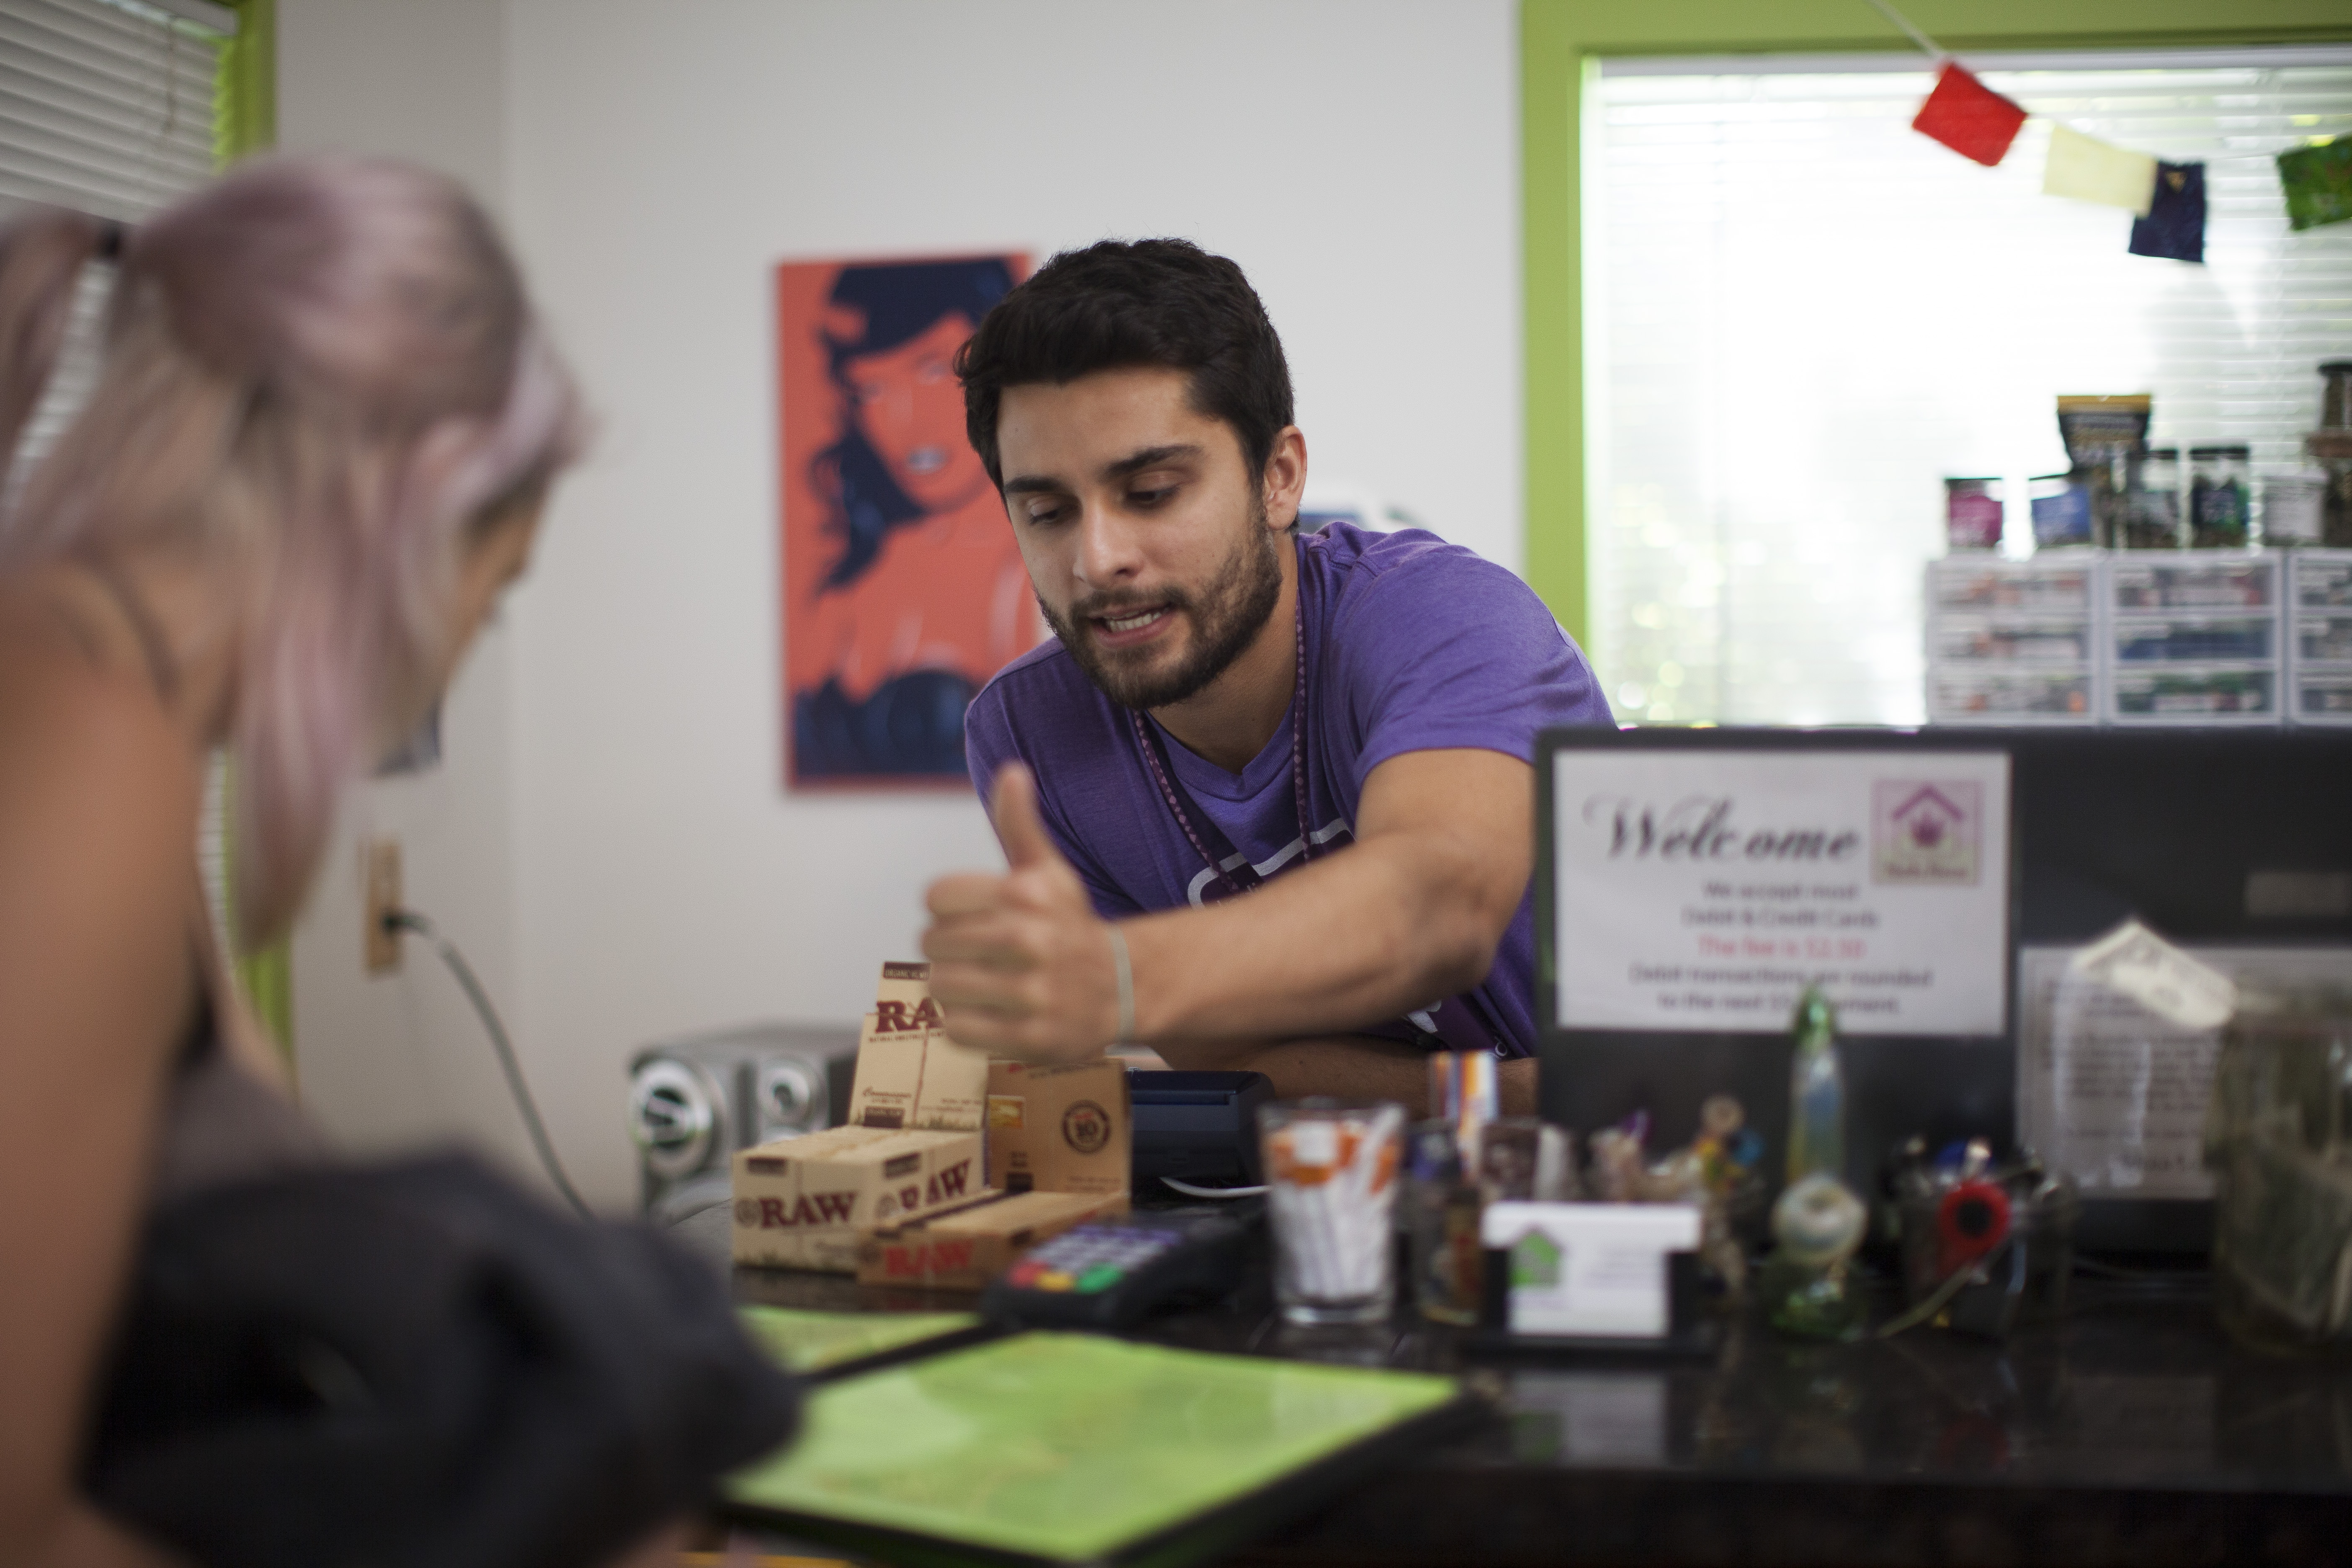 Charlie the Herbs House budtender selling Leafly Gorilla Glue pre-rolls for the Thrift Store Cannabis Challenge